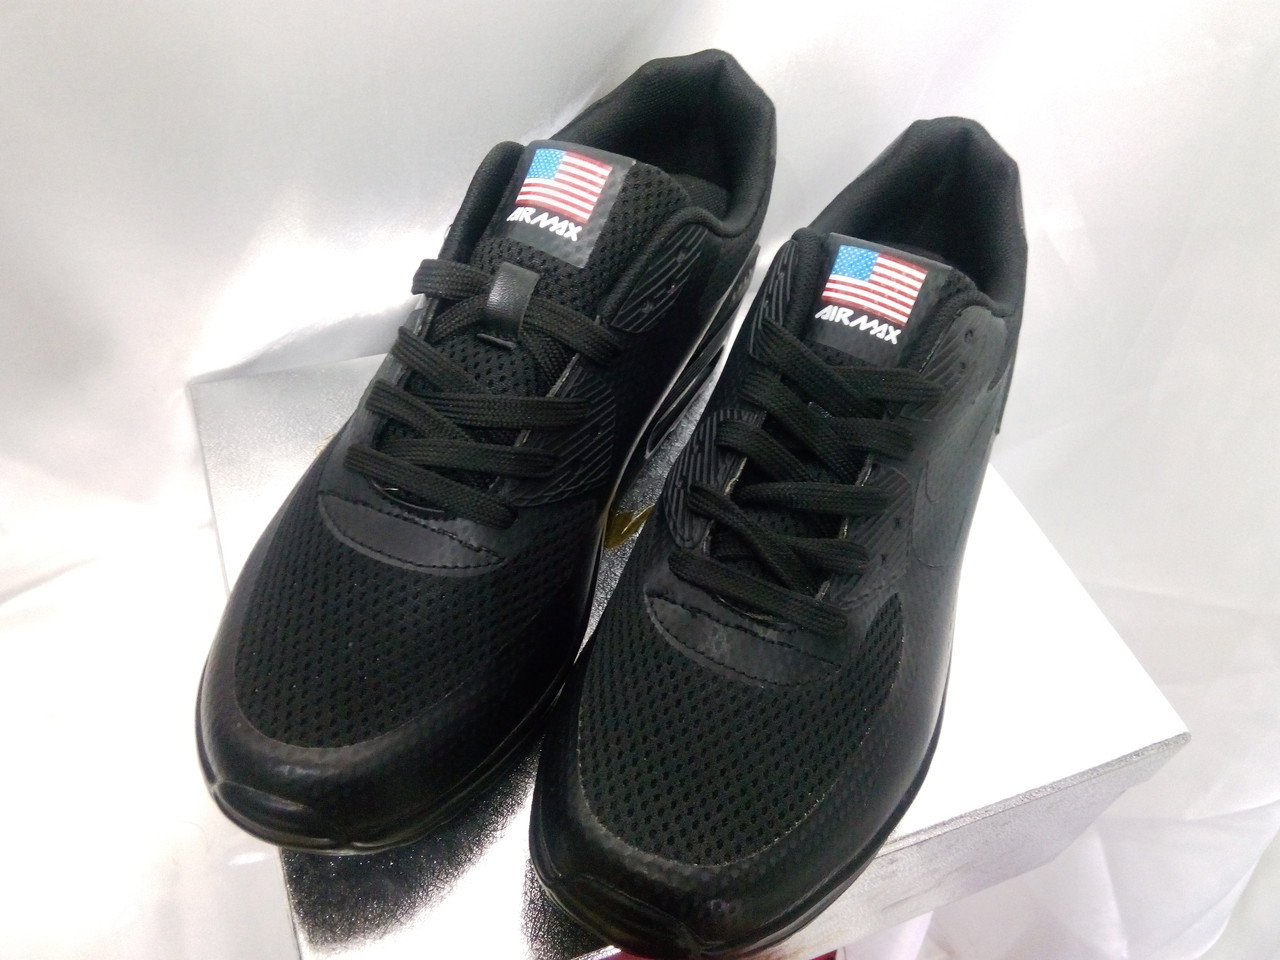 eca80af1 new zealand nike air max 90 hyperfuse usa all black fdfb5 e5439